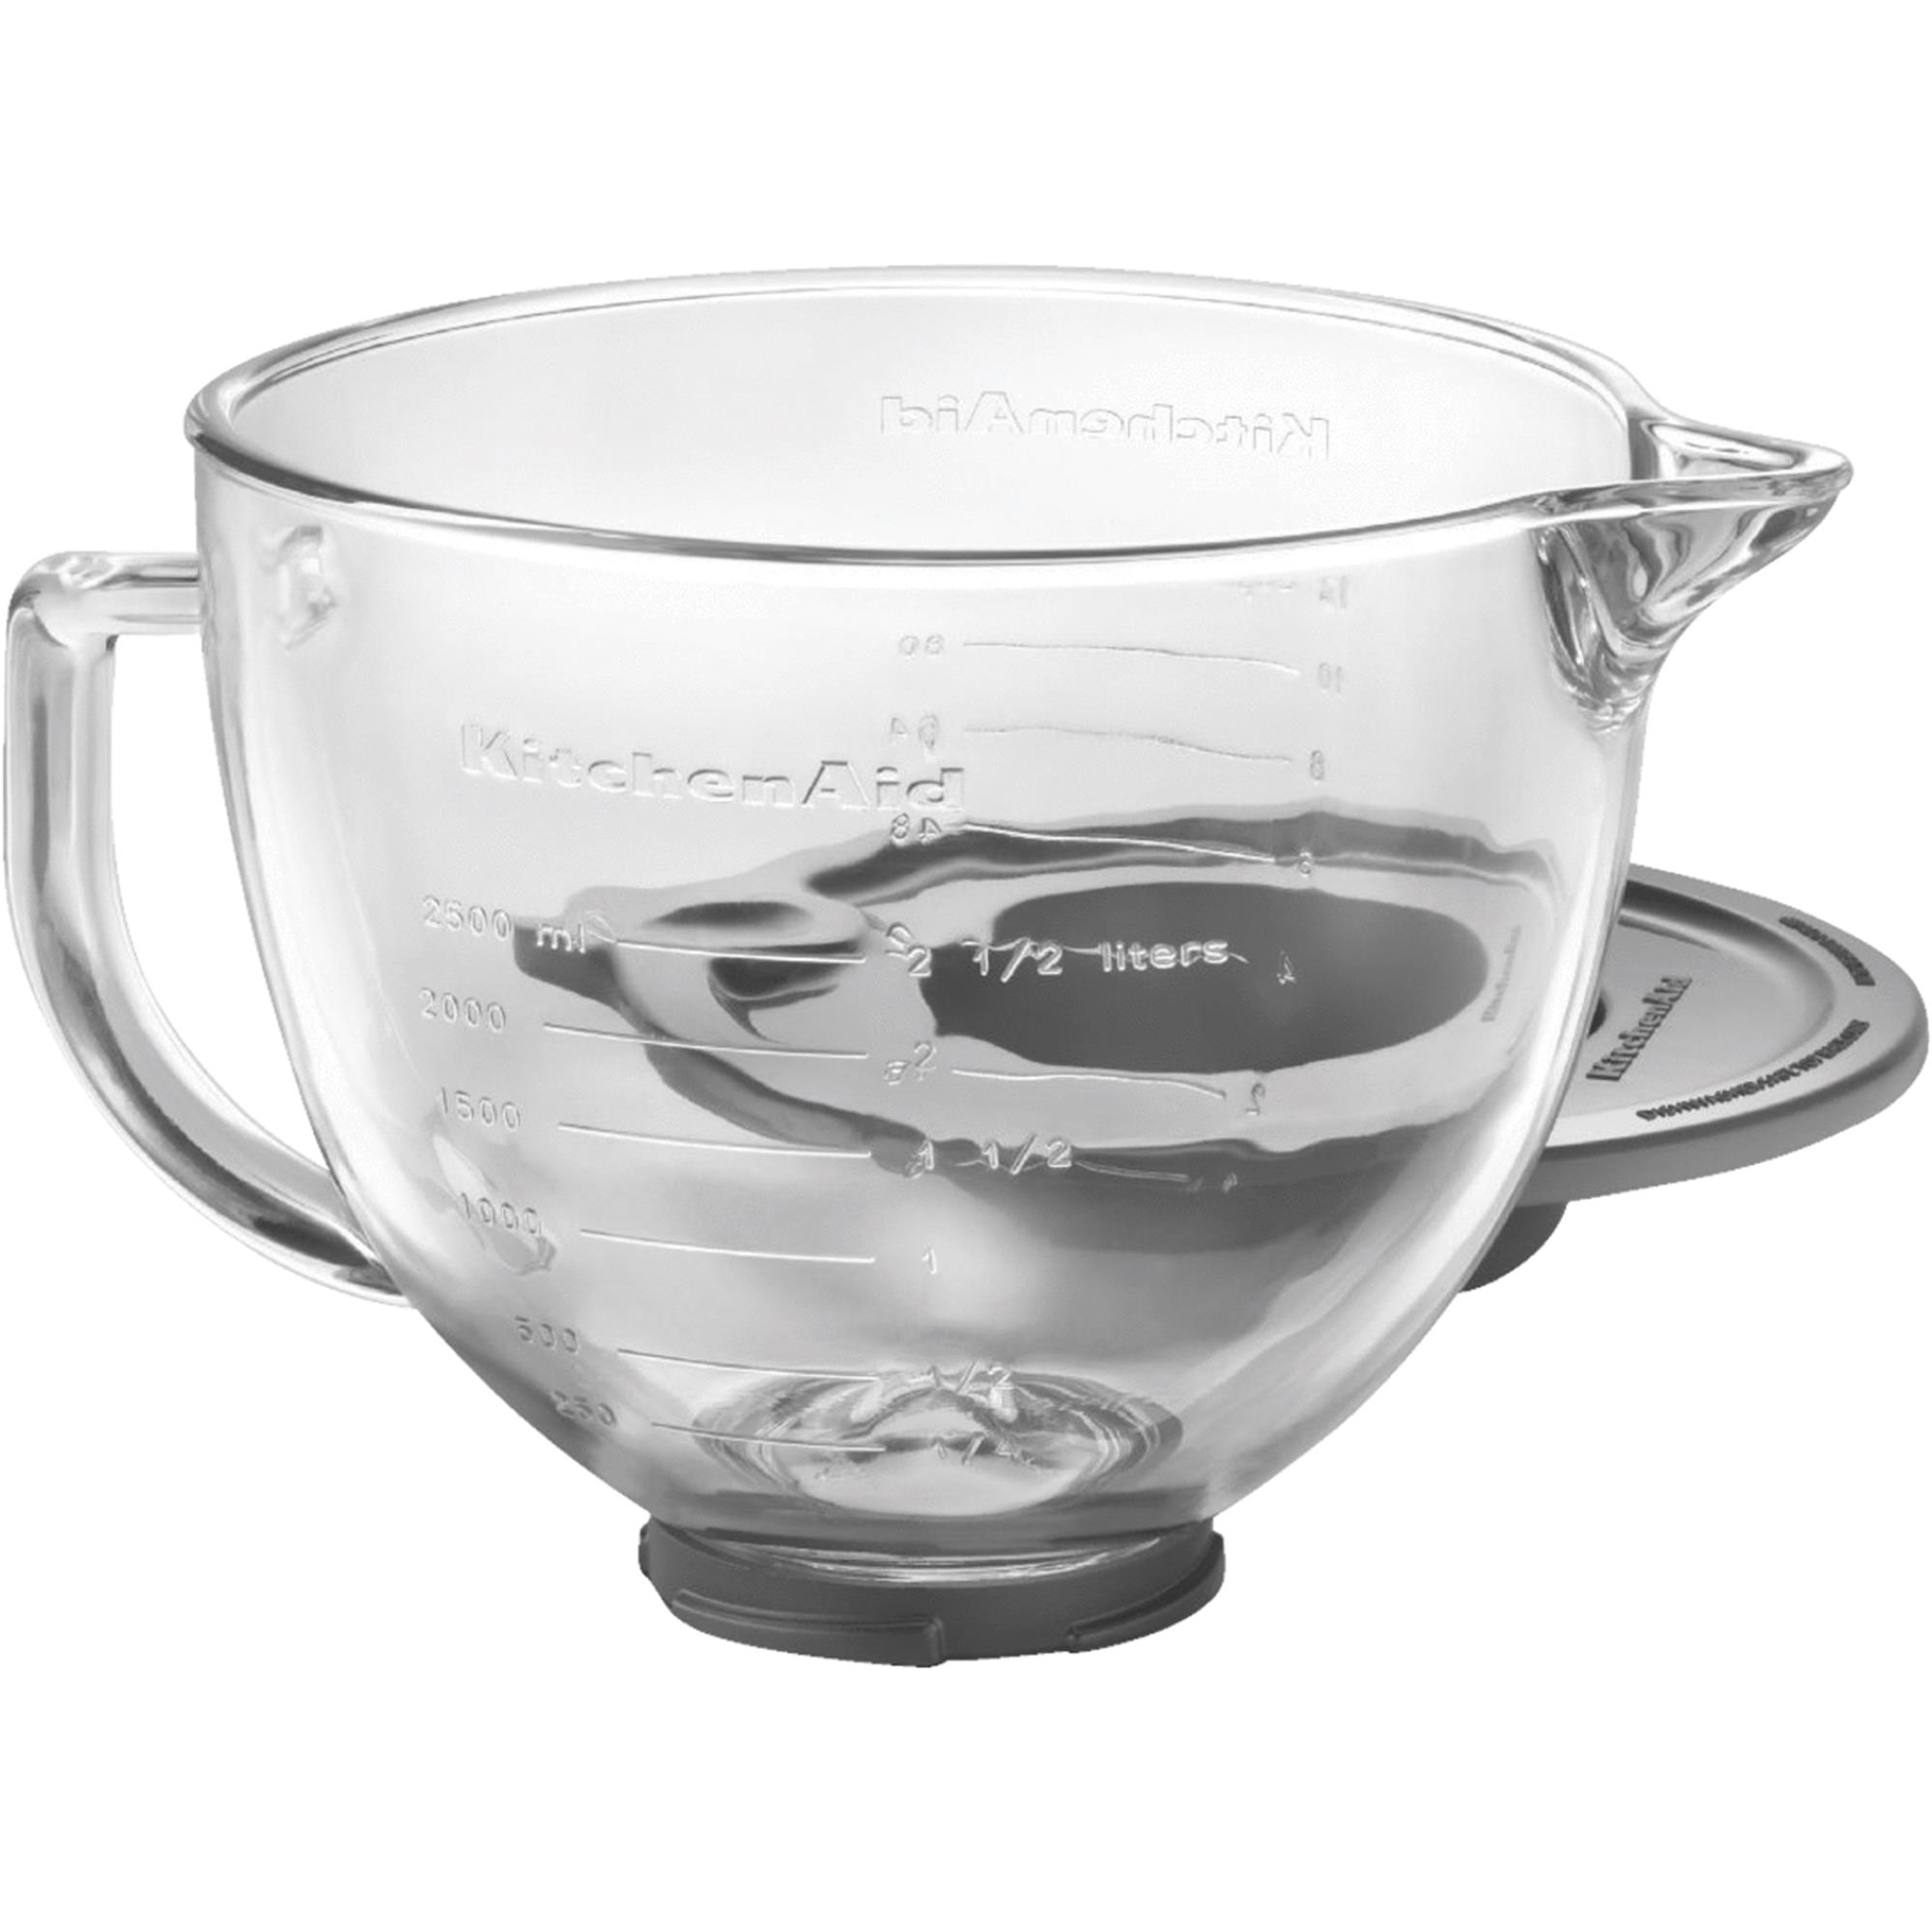 KitchenAid® 5-Qt. Tilt-Head Glass Bowl with Measurement Markings & Lid (K5GB)